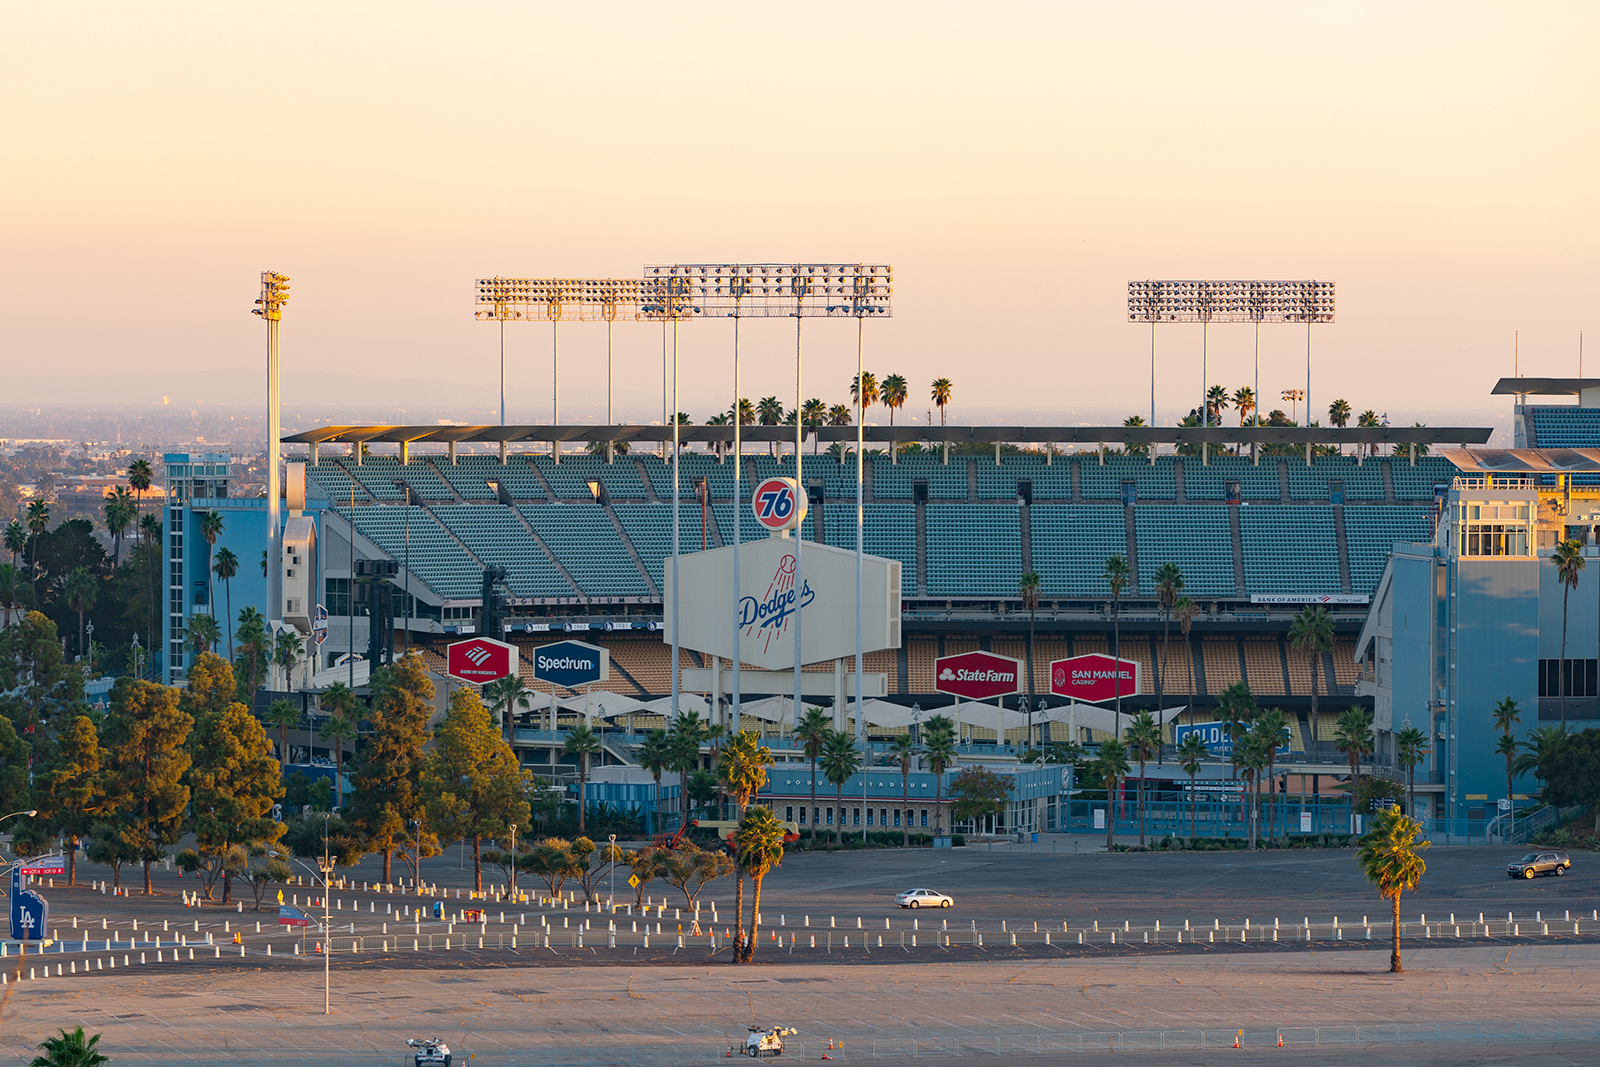 A general view of Dodger Stadium is seen in Los Angeles, on November 18, 2020.